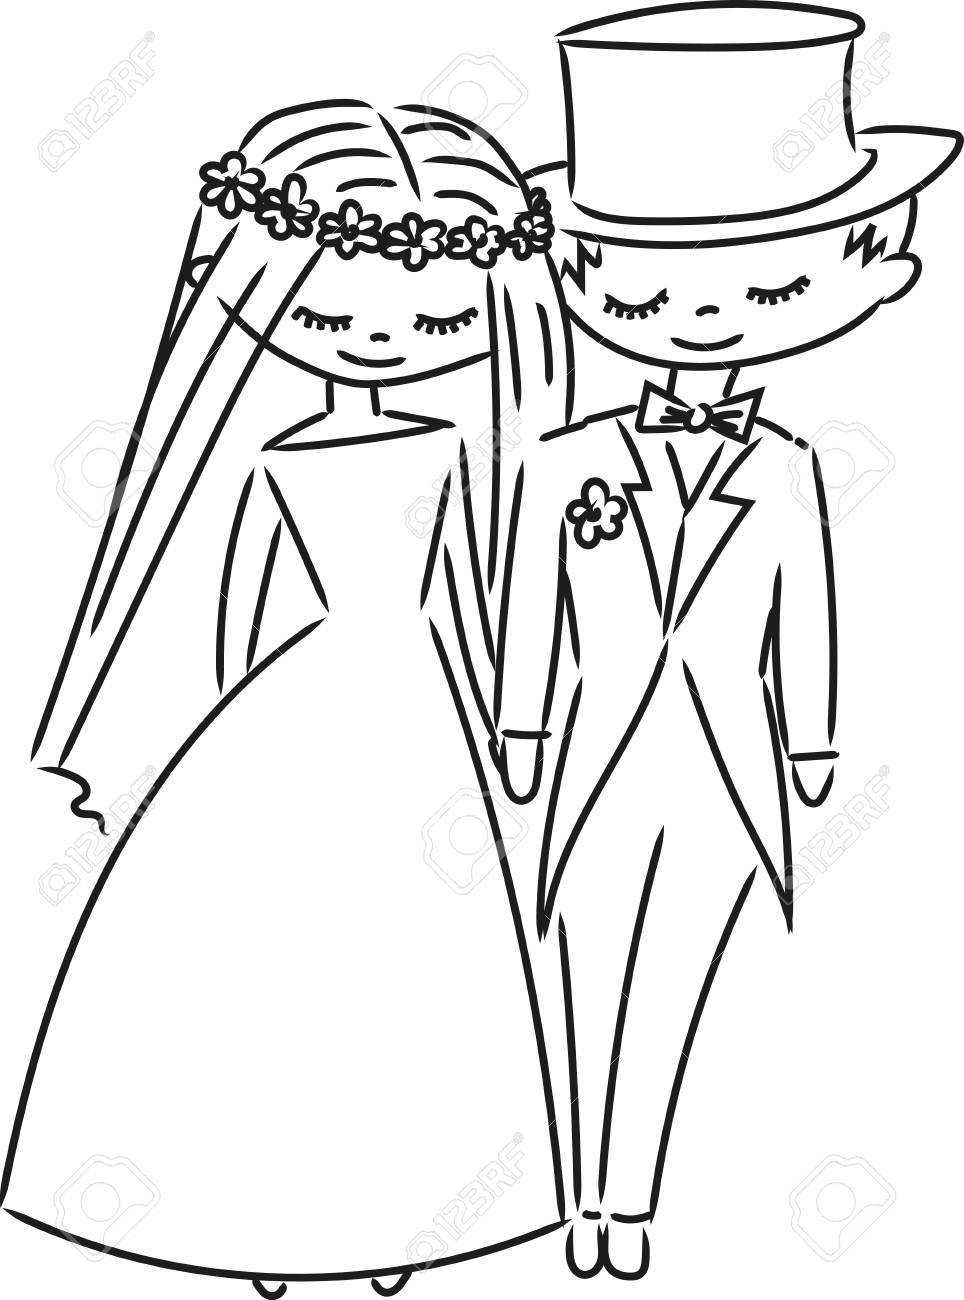 Wedding Couple Sketch Royalty Free Cliparts Vectors And Stock Illustration Image 76186453